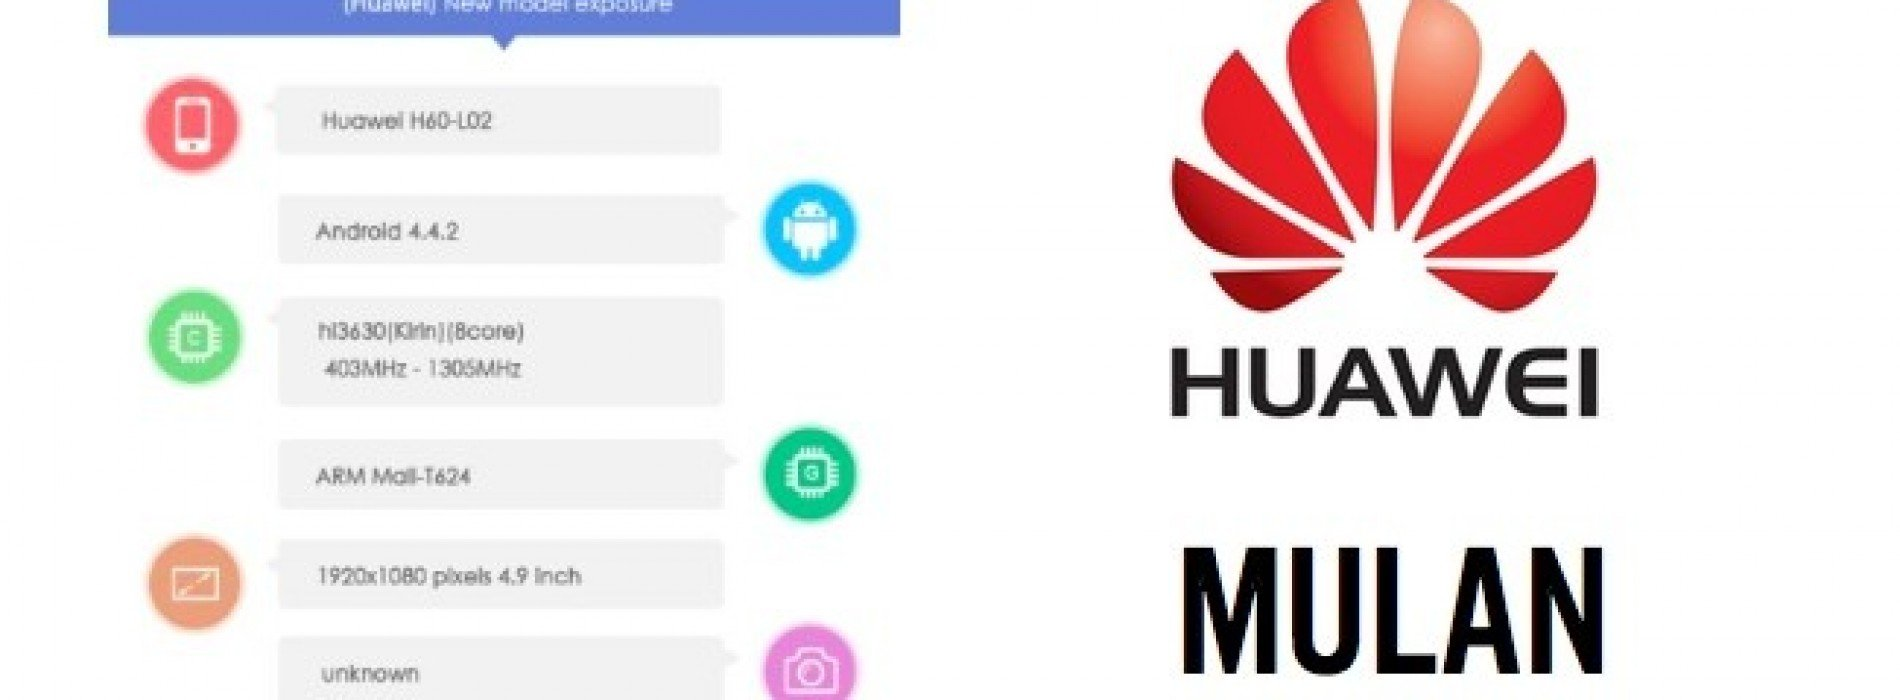 "Huawei's flagship ""Mulan"" showing an 8-core processor"